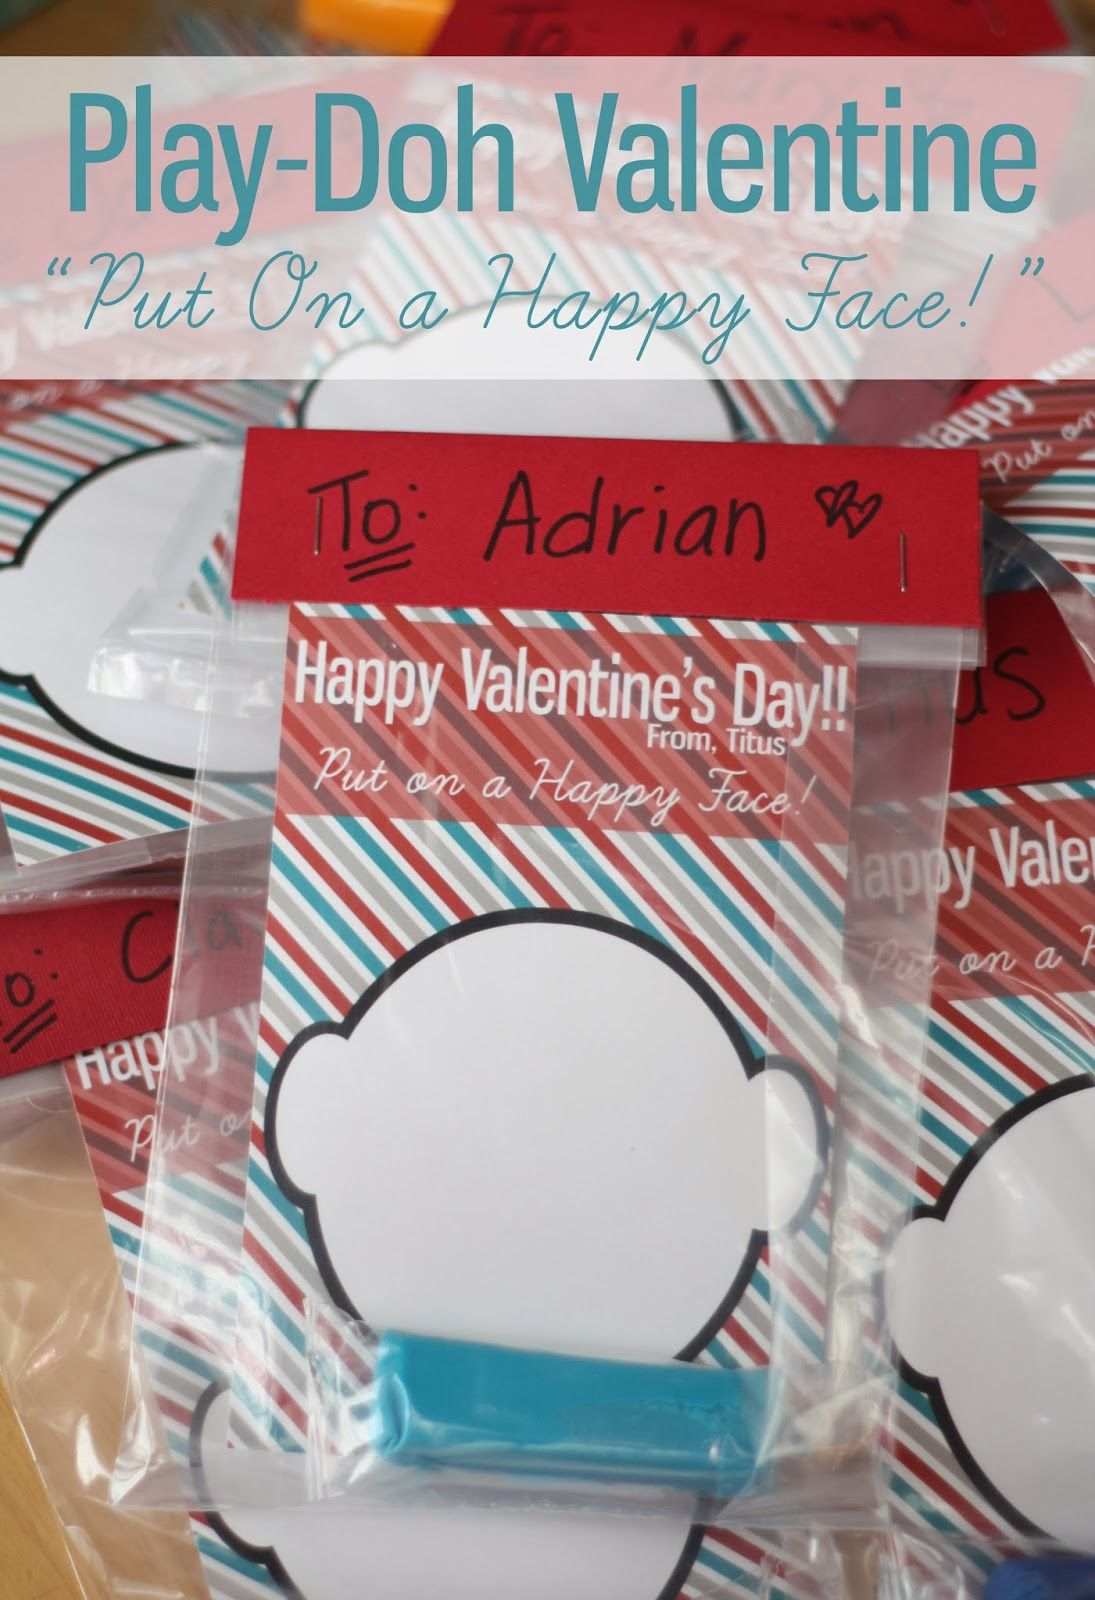 Happy Face Play Doh Valentine Free Printable With